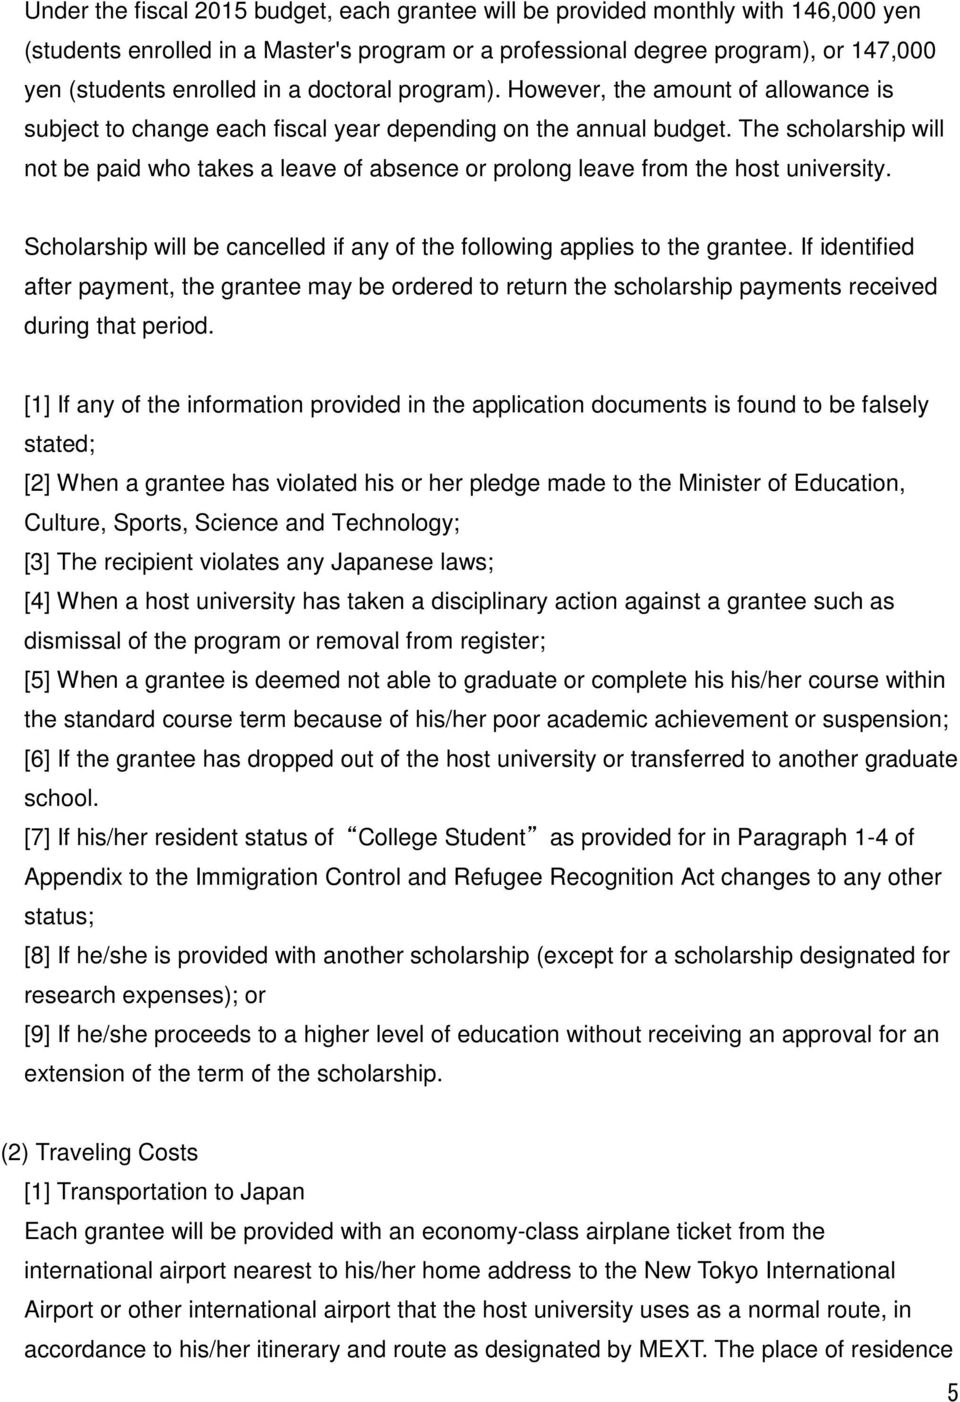 The scholarship will not be paid who takes a leave of absence or prolong leave from the host university. Scholarship will be cancelled if any of the following applies to the grantee.